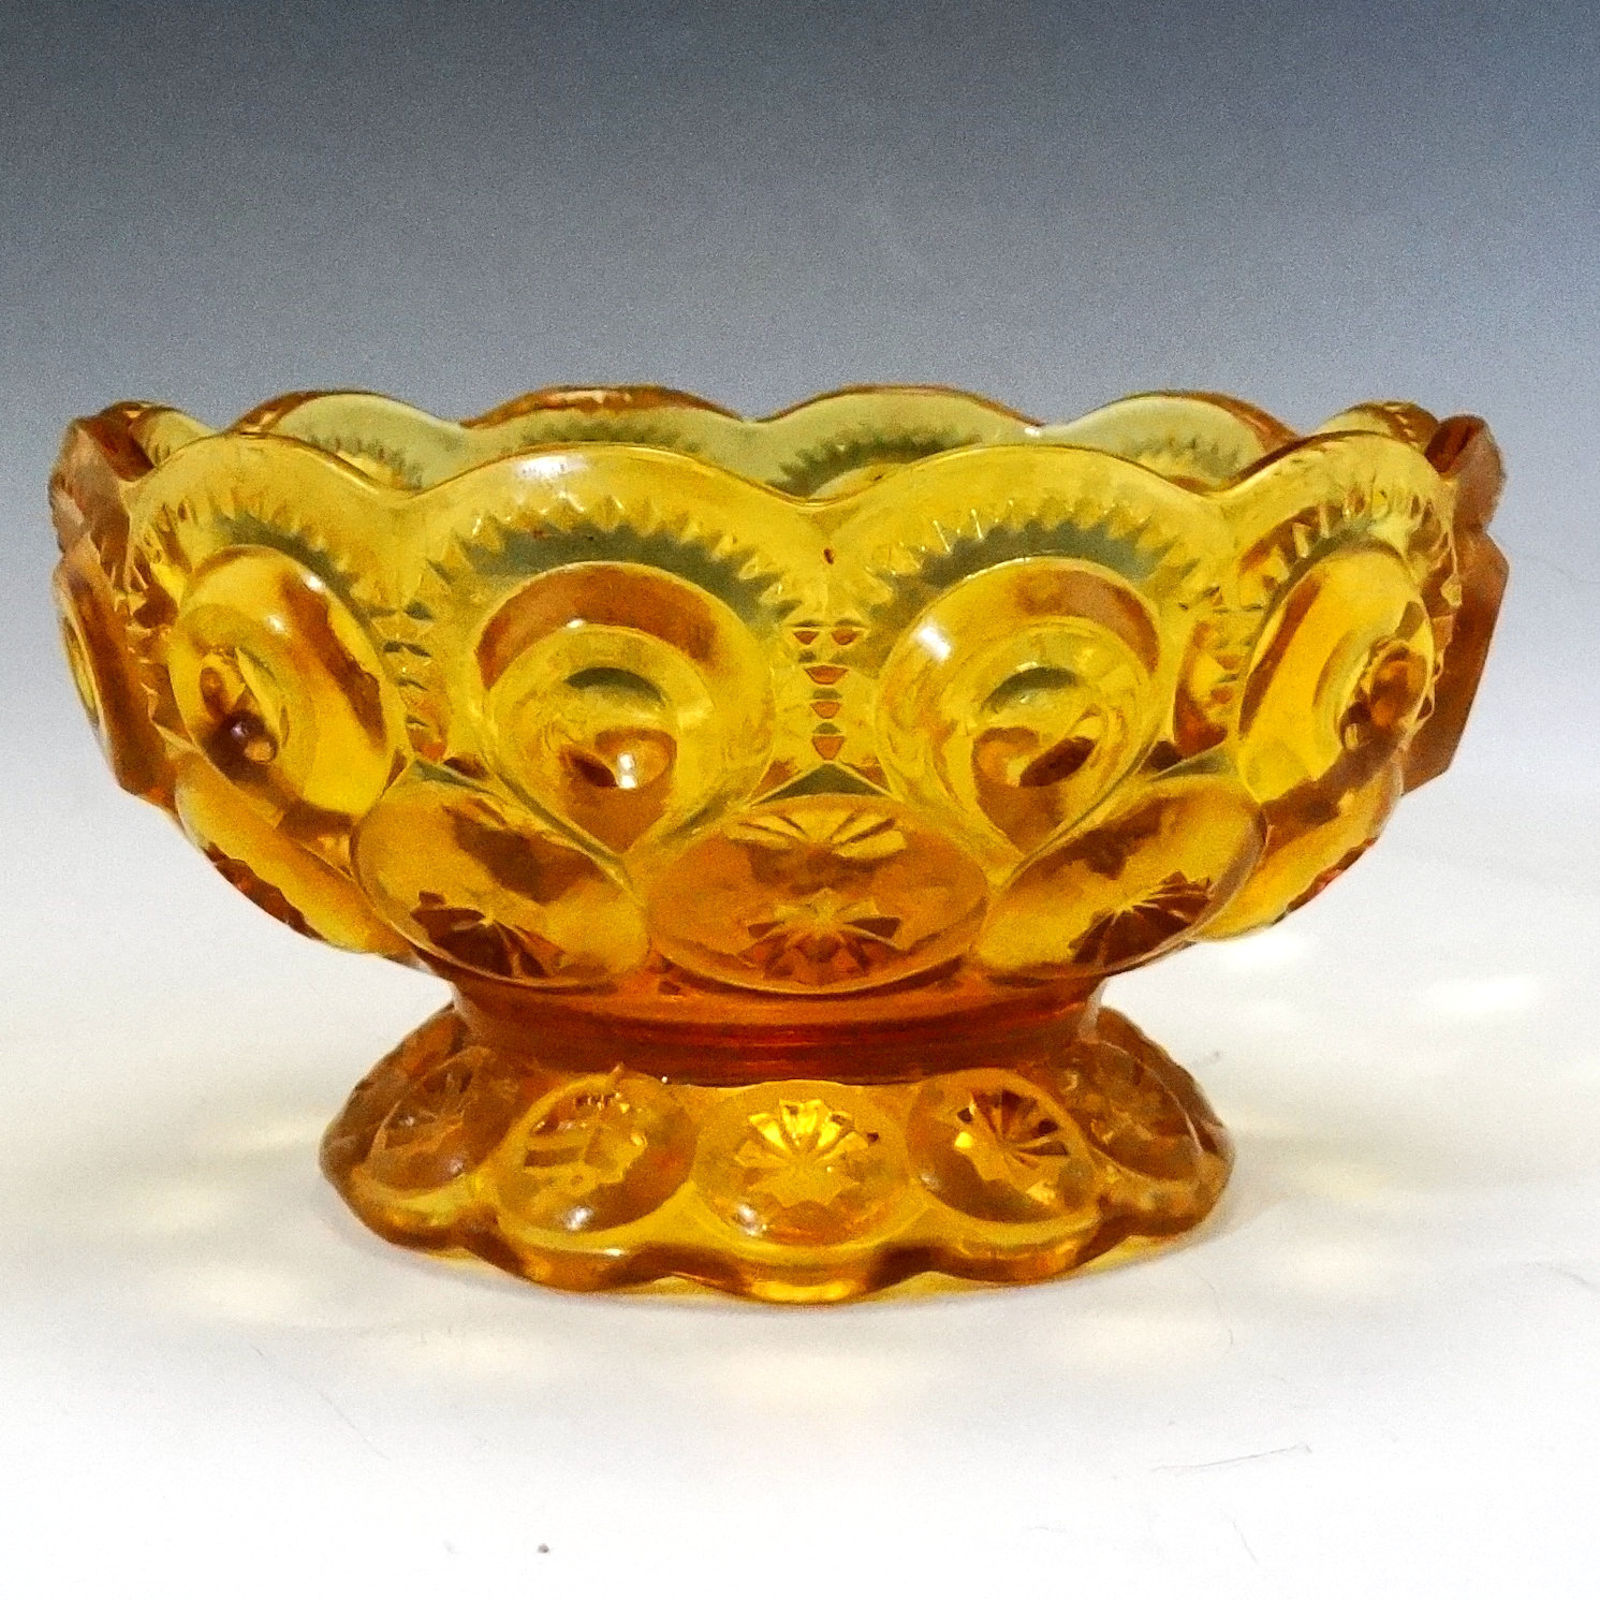 L E Smith MOON and STARS Amber 4 1/2 inch Bowl